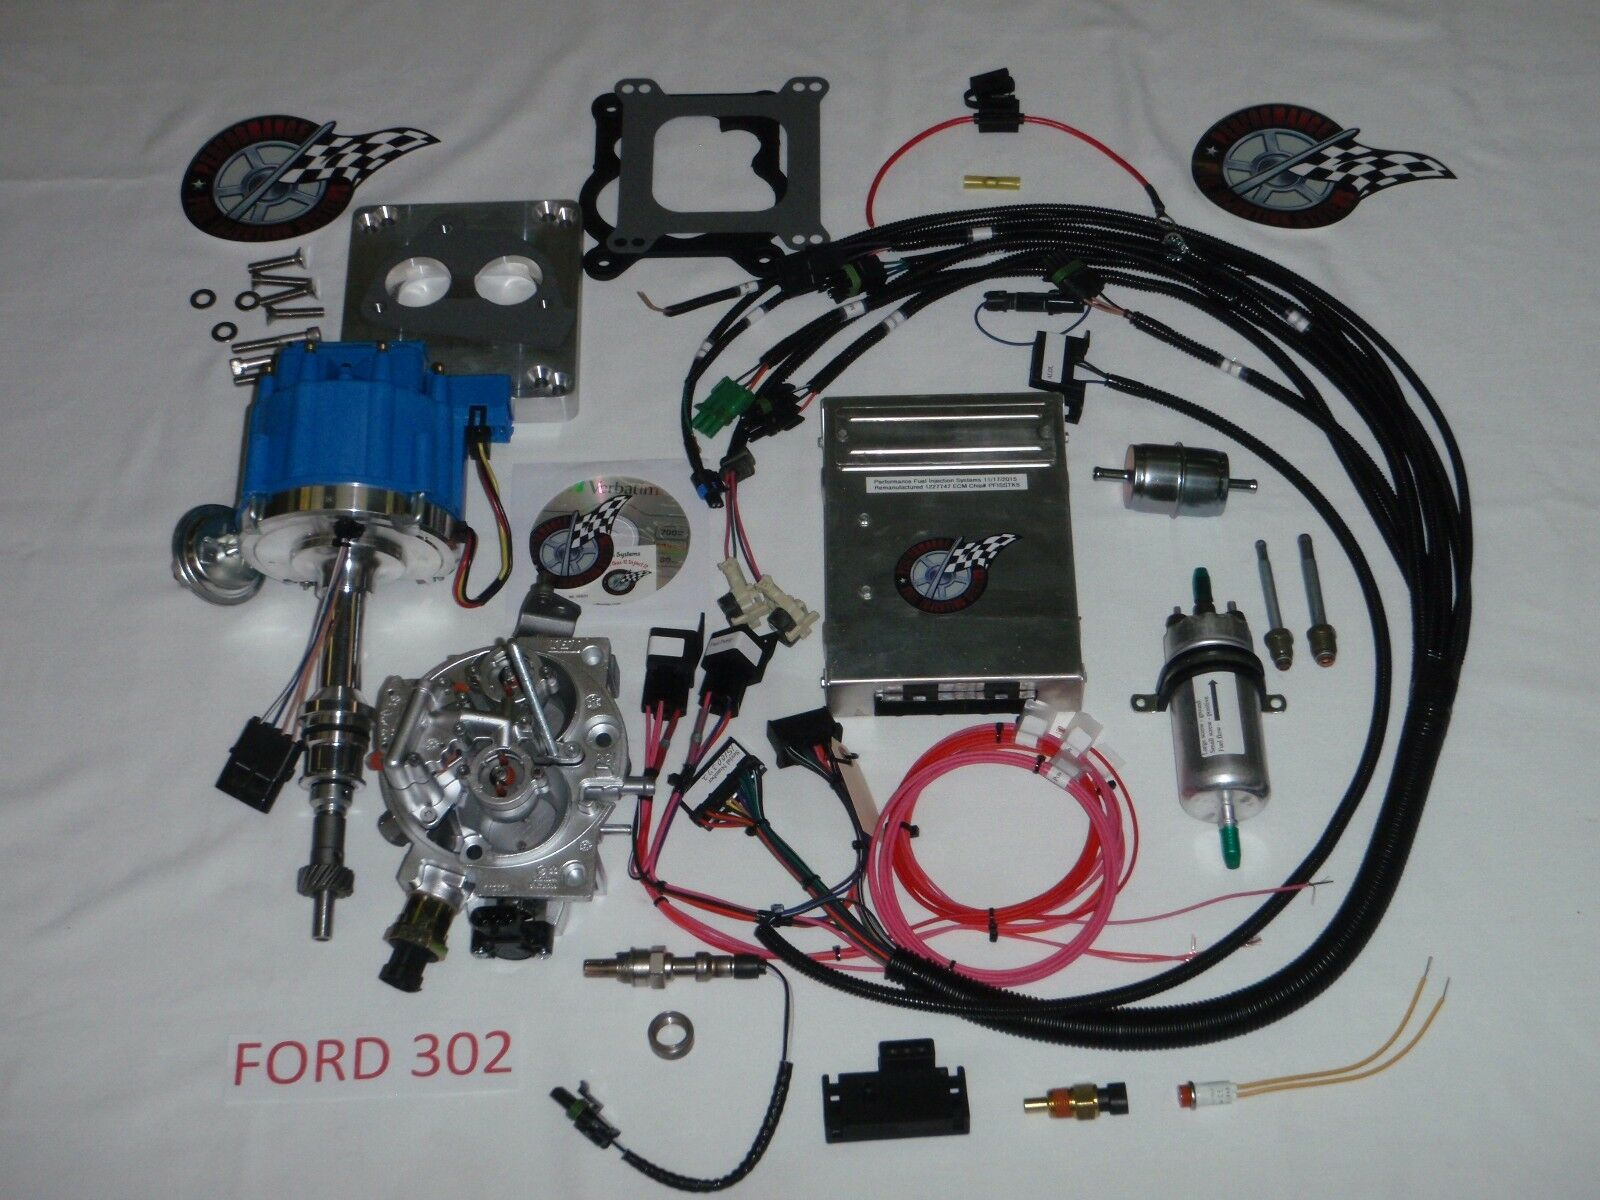 Ford Fuel Injection System Complete Tbi For Stock Small Block 302 Wiring Harness Jeep 1 Of 9free Shipping